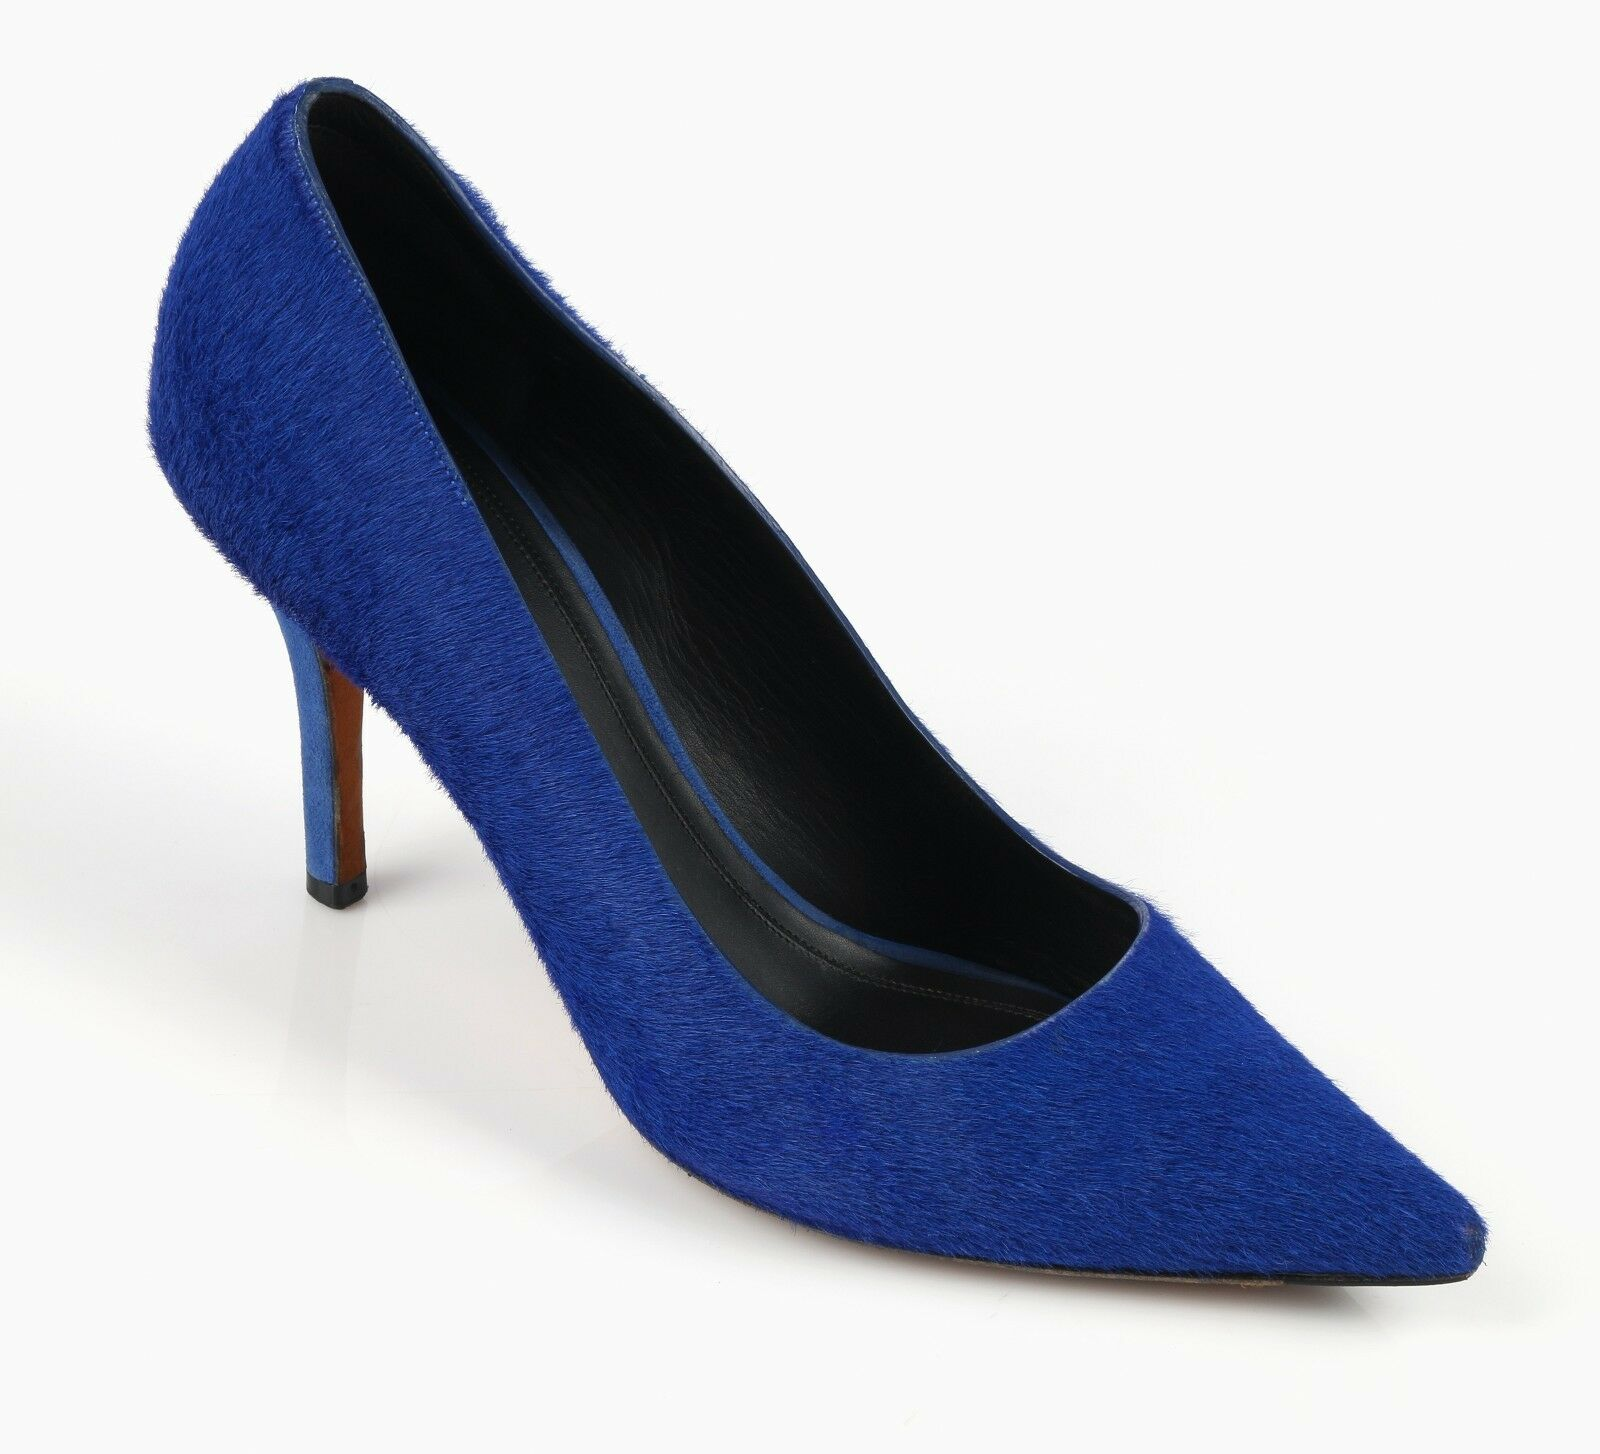 CELINE PARIS COBALT blueE PONY HAIR SUEDE HEEL POINTED TOE PUMPS HEELS MSRP  720